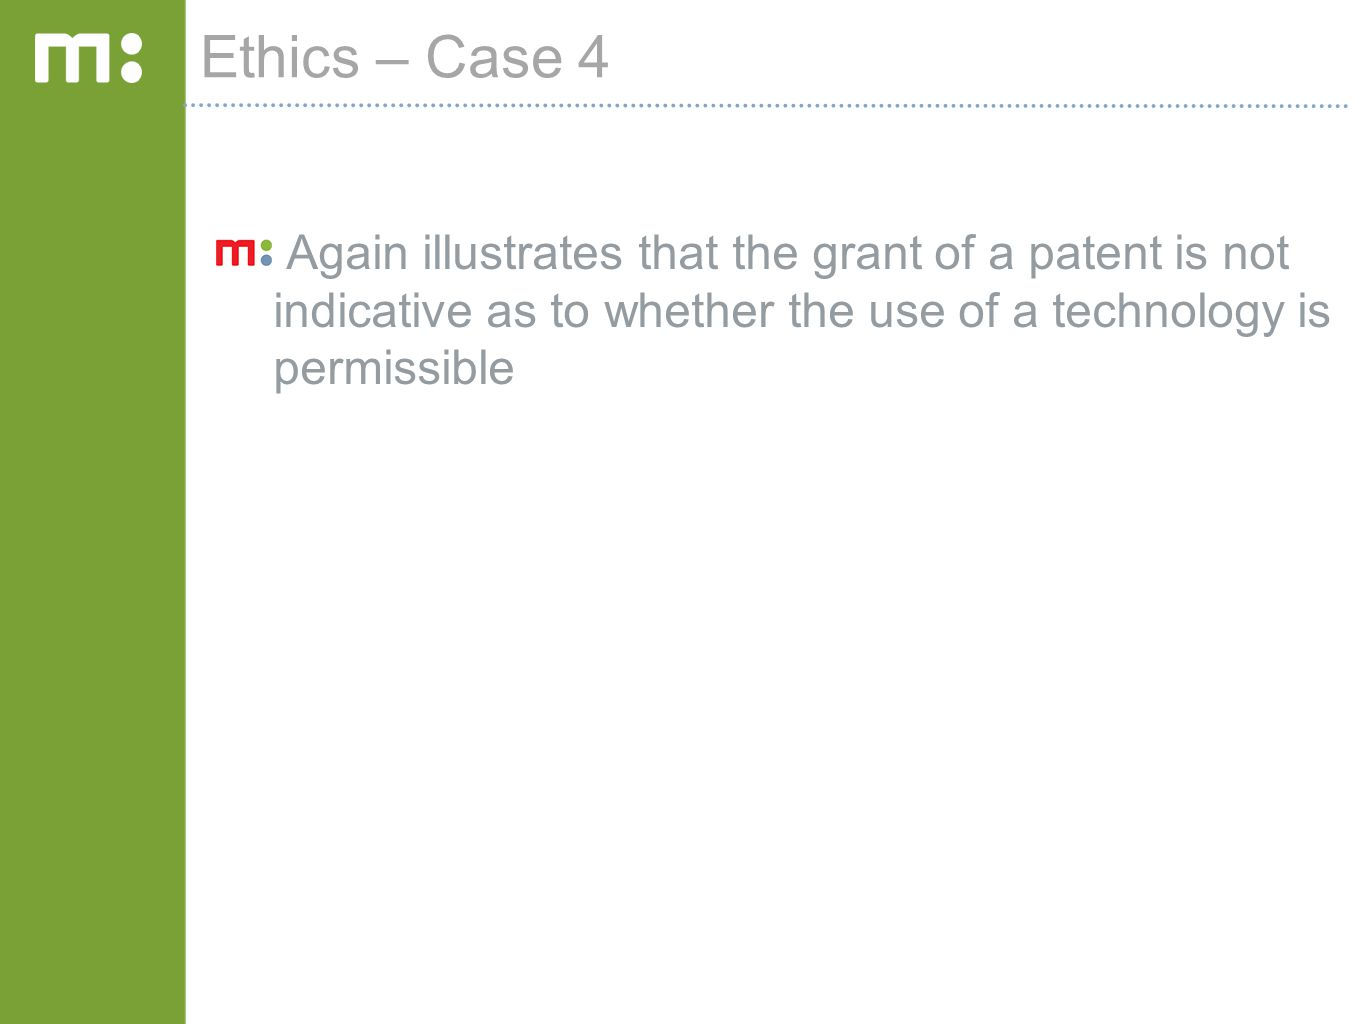 Ethics – Case 4 Again illustrates that the grant of a patent is not indicative as to whether the use of a technology is permissible